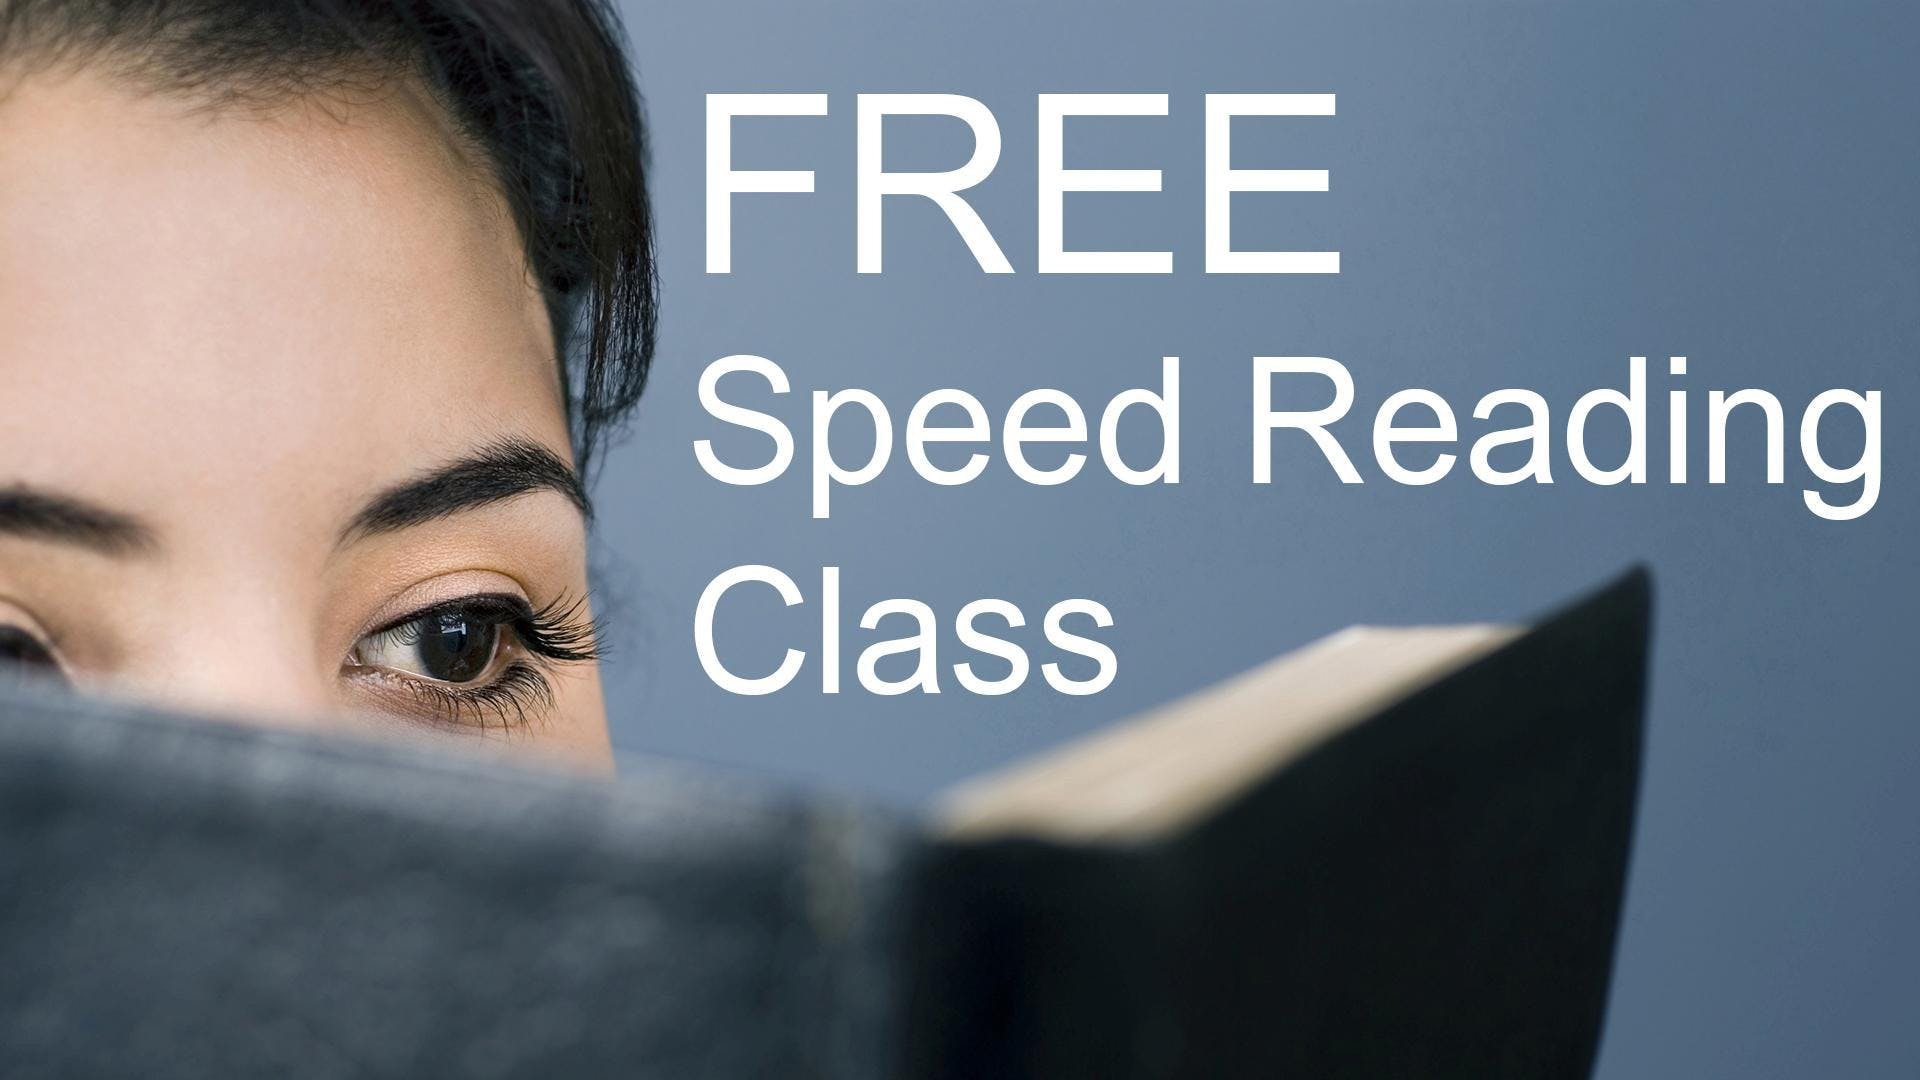 Free Speed Reading Class - Anchorage